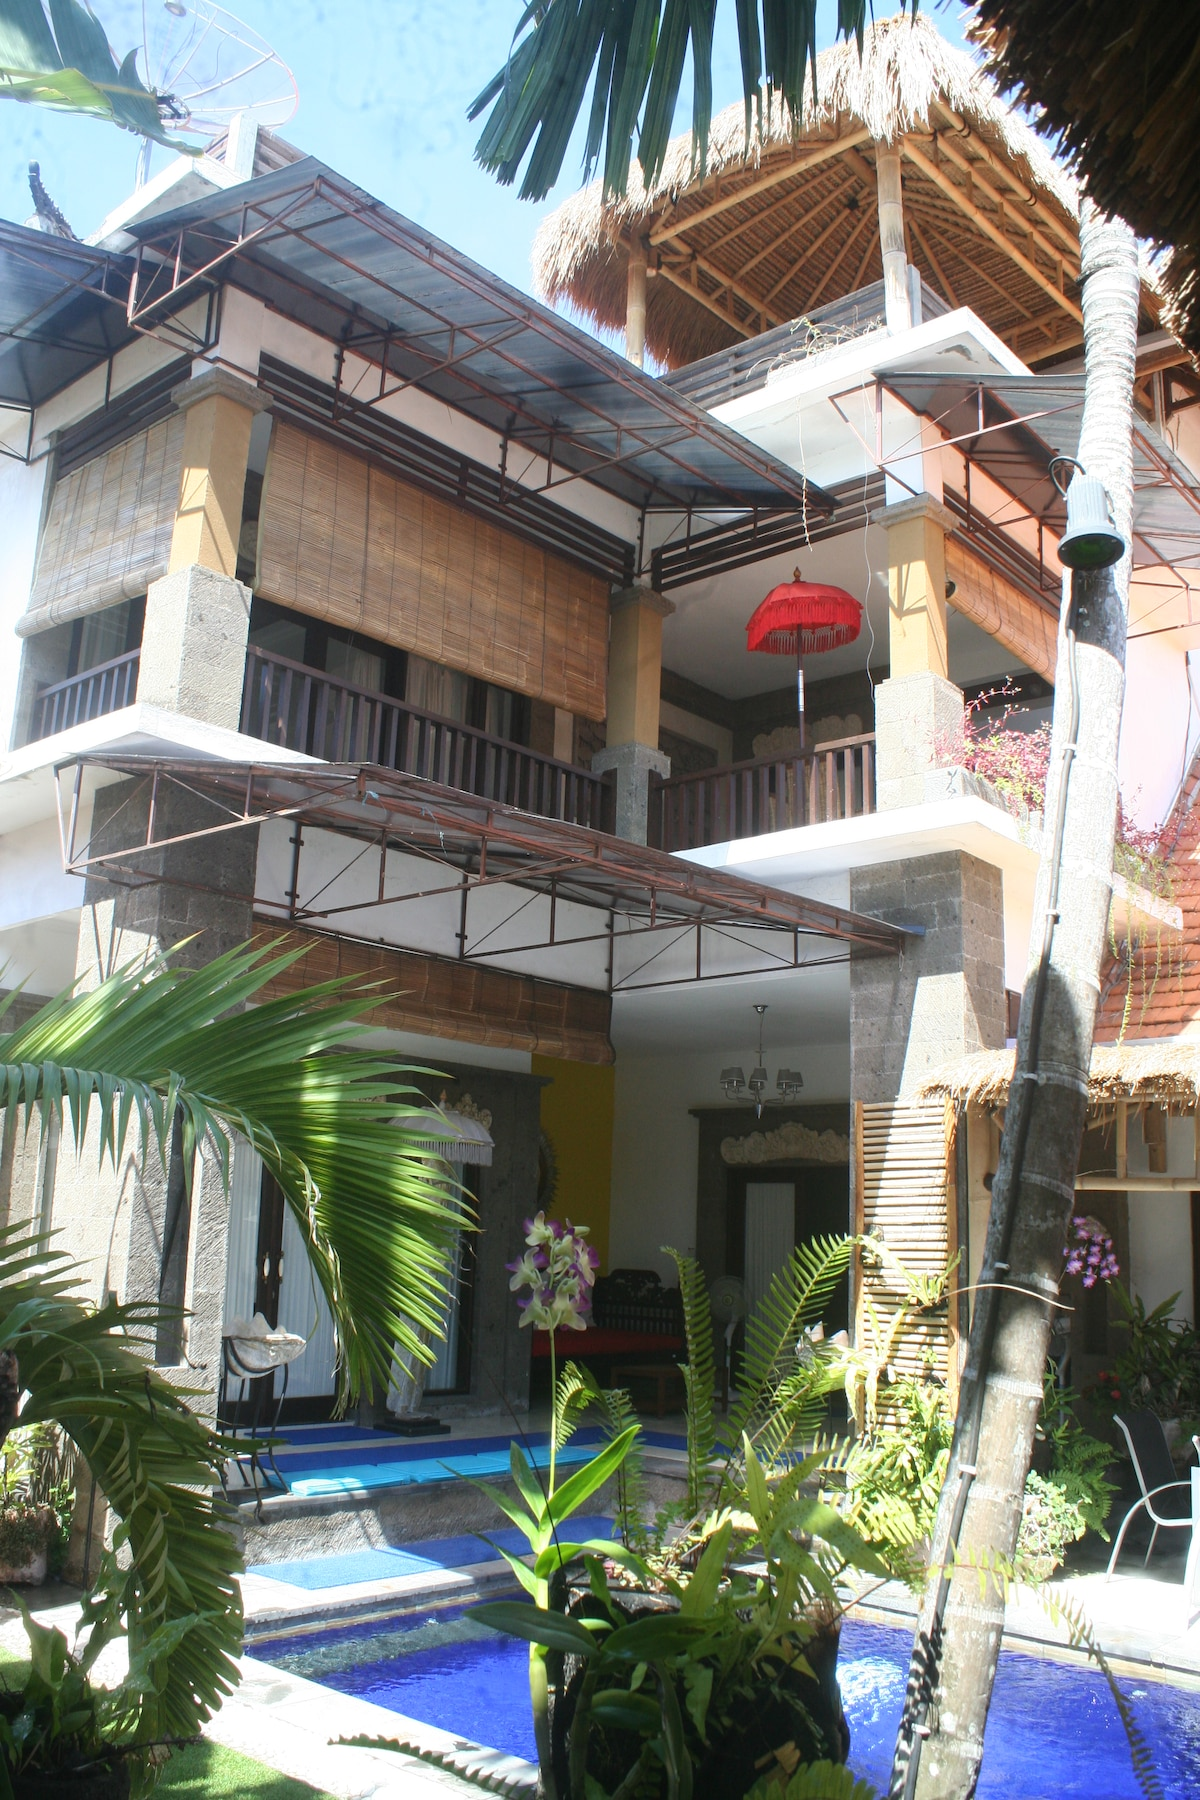 LARGE  VILLA showing 3 levels of Entertainment and relaxation spaces